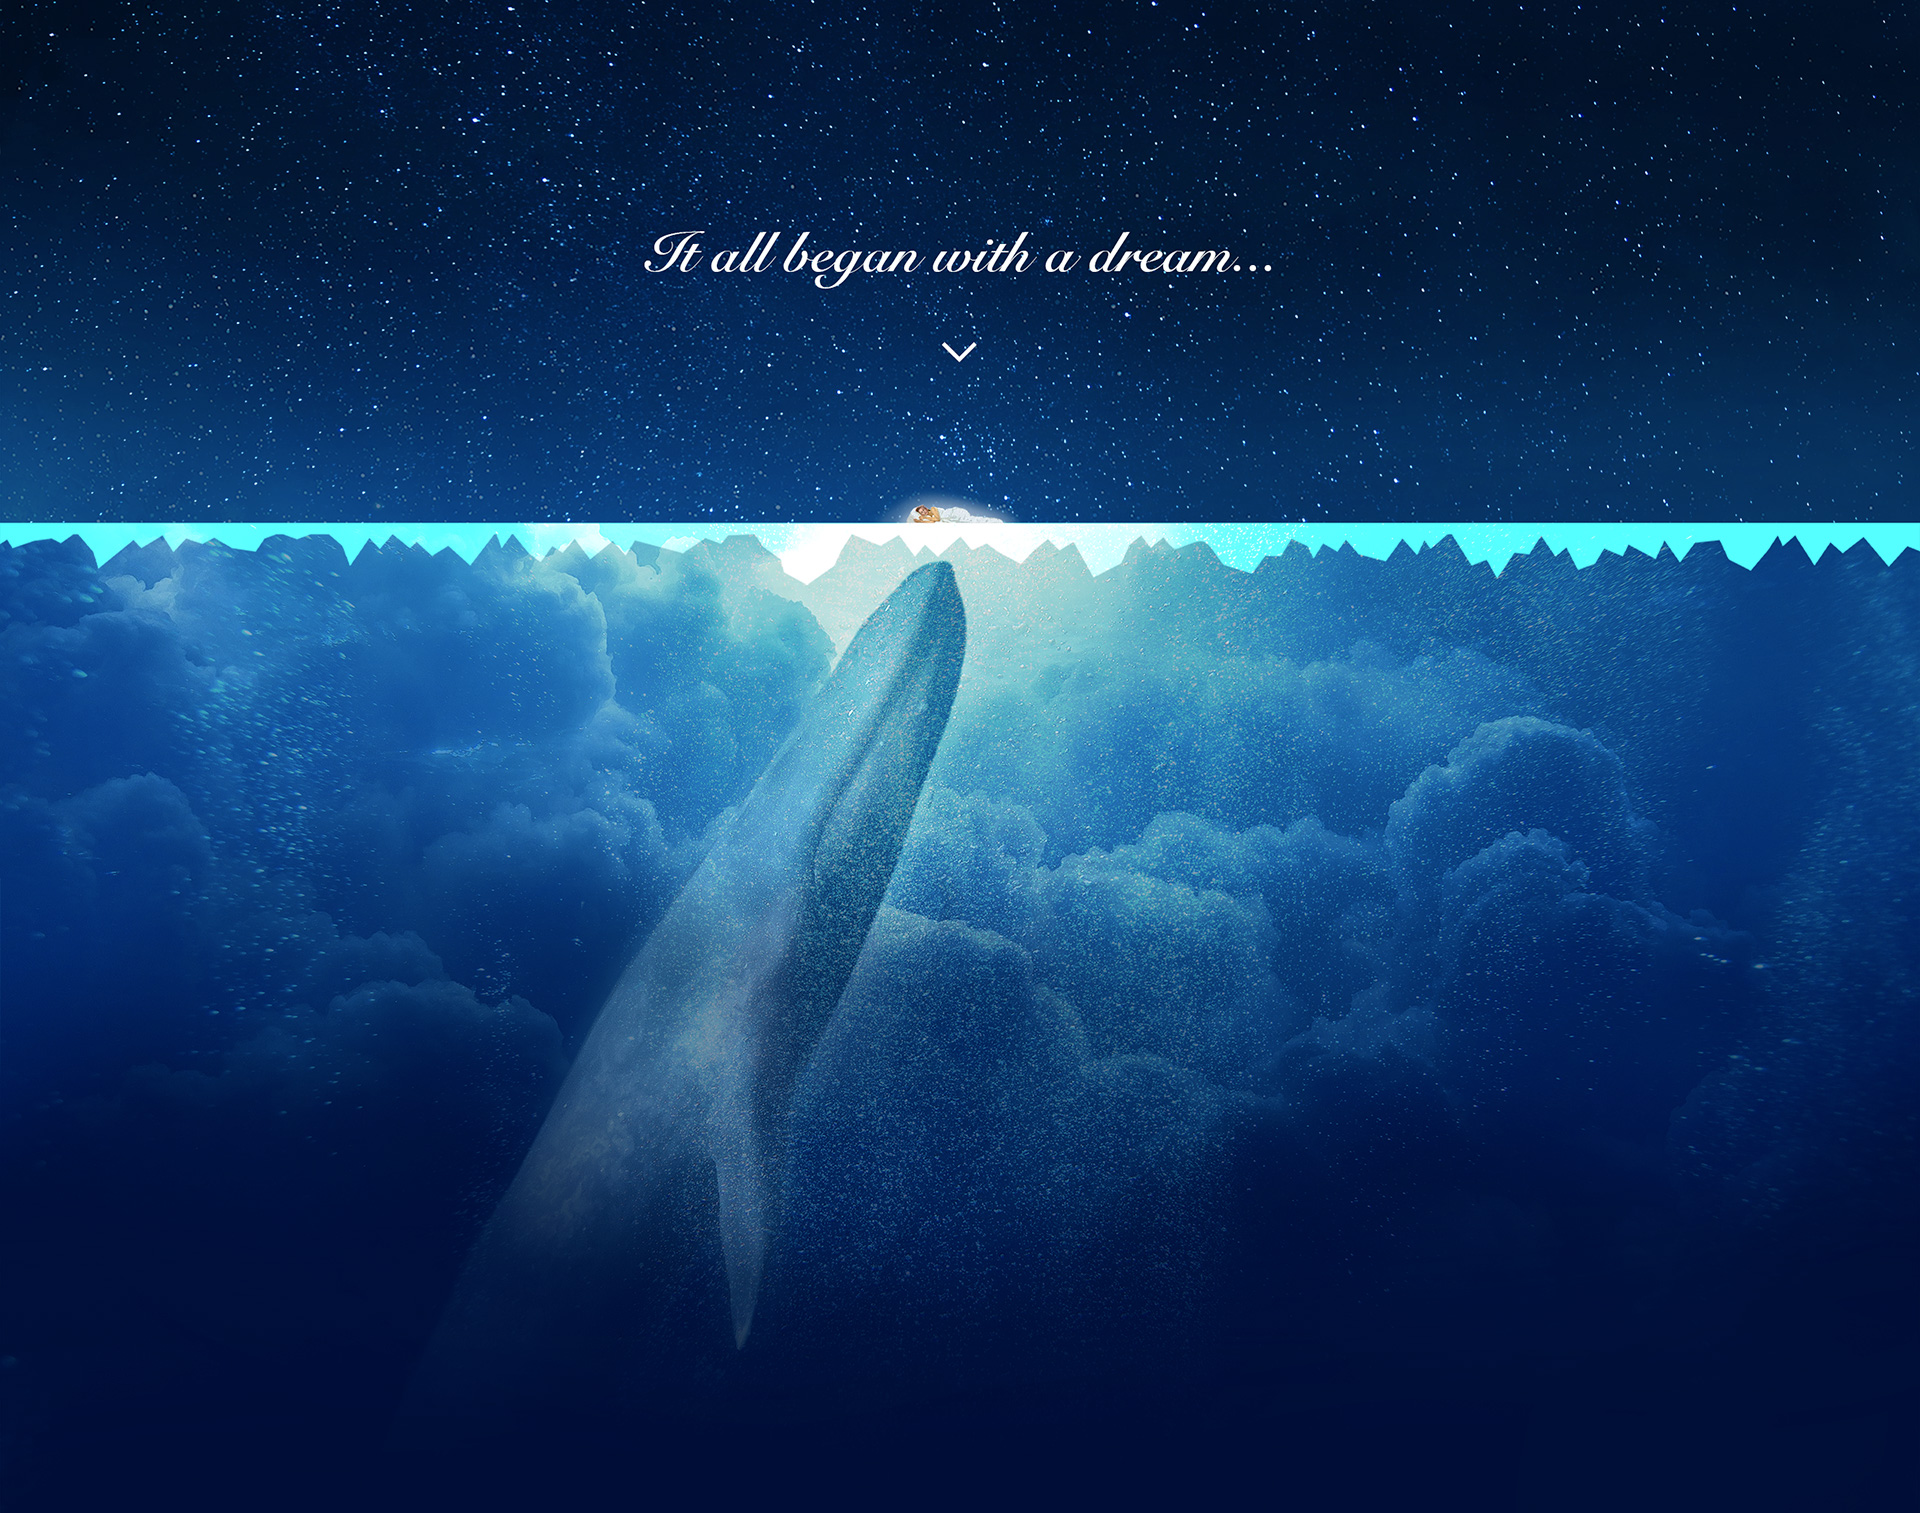 Parvati Ocean Anthem - It all began with a dream of a whale